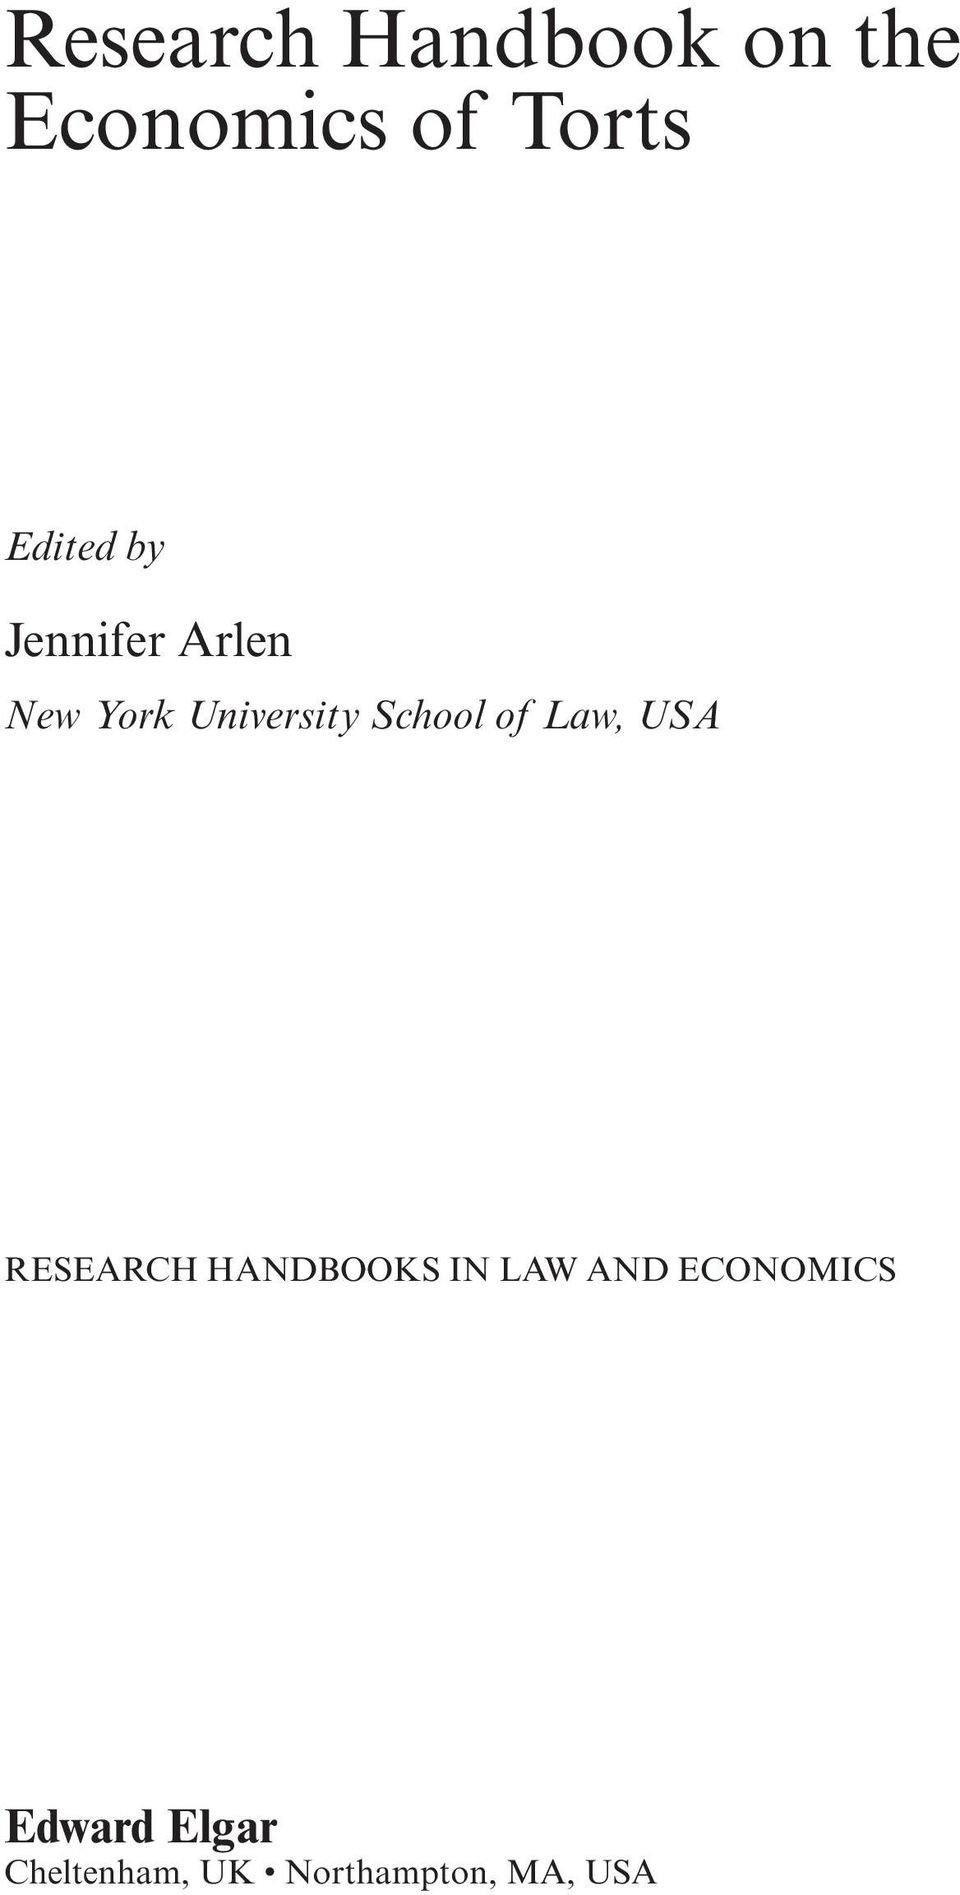 new york university law & economics research paper series Do criminal laws influence hiv risk behavior an empirical trial arizona state law journal, 2007  temple university beasley school of law legal studies research paper series.